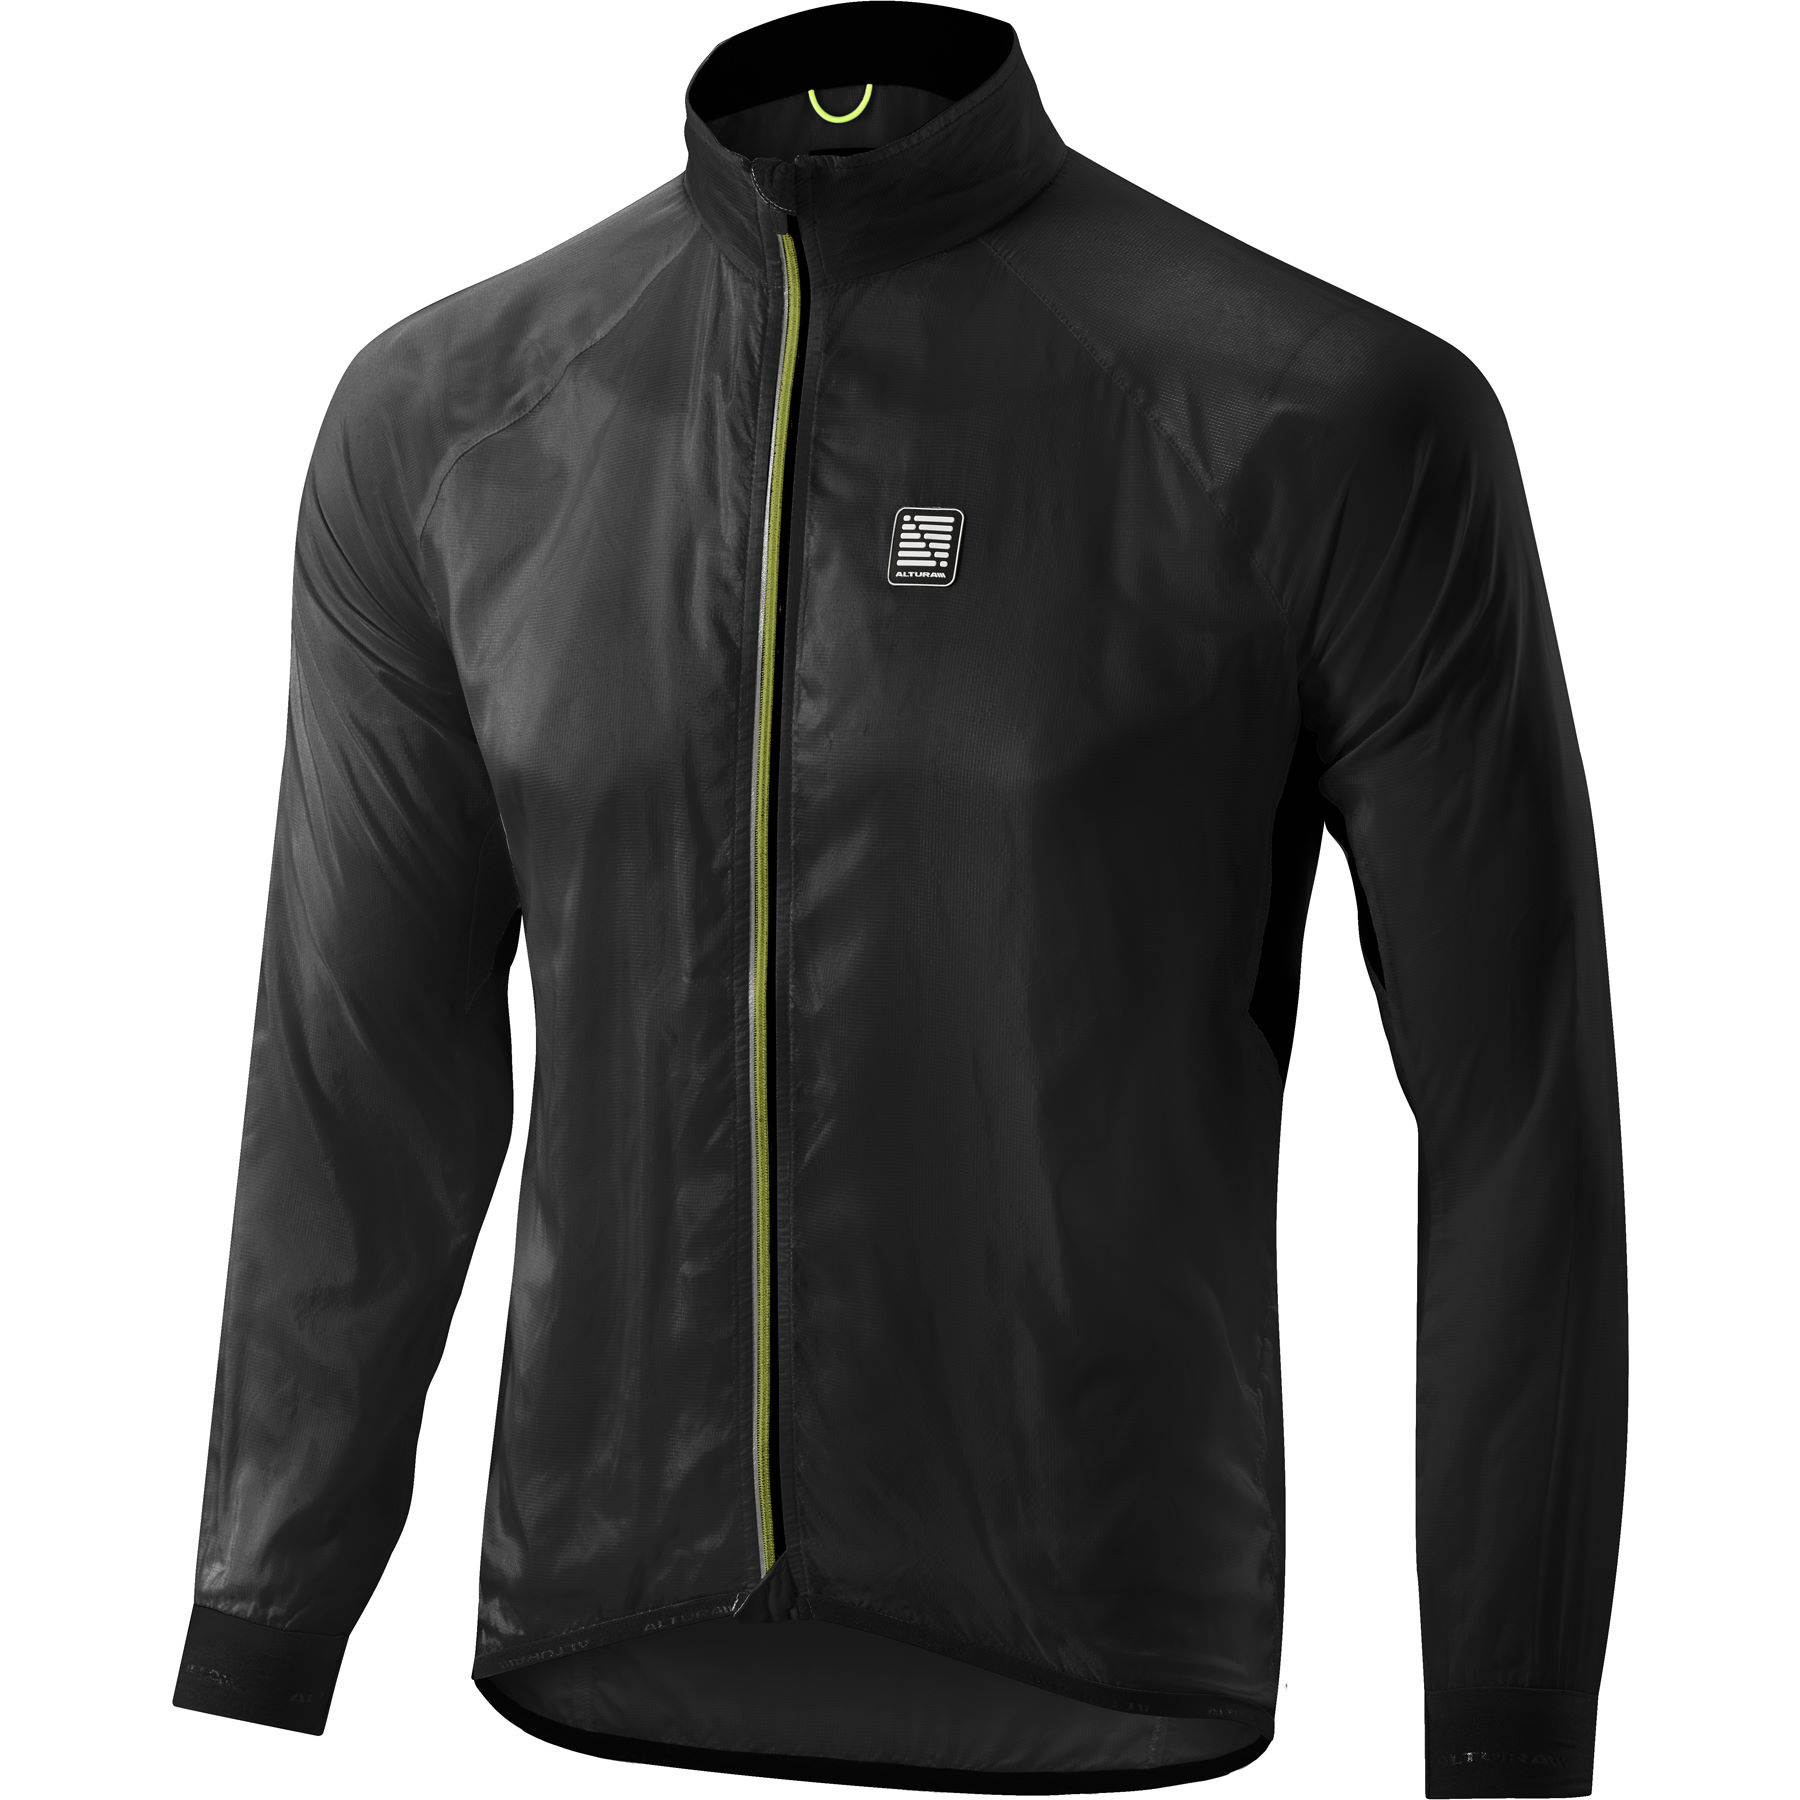 Shop women's windproof windbreaker jackets & vests. Marmot has quality outdoor clothing & gear made for performance & style. Marmot.